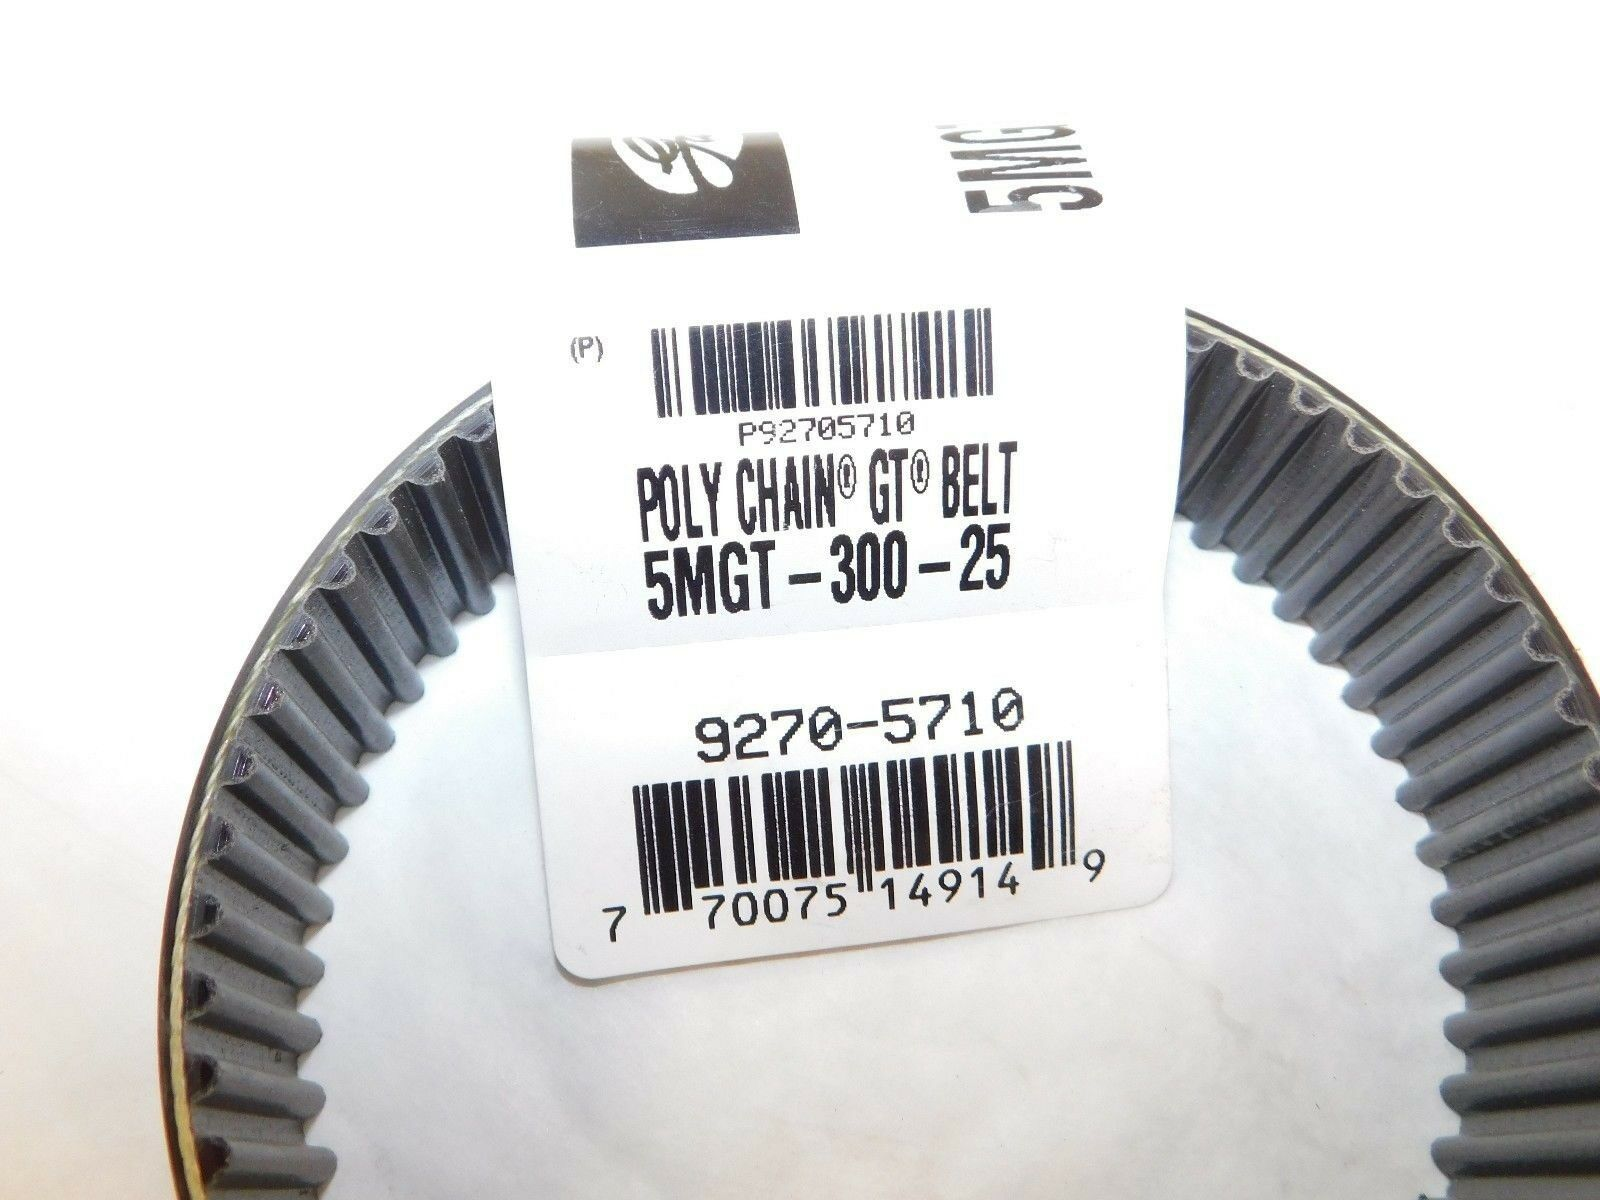 Gates Poly Chain Synchronous Belt 9270-5710 5MGT-300-25